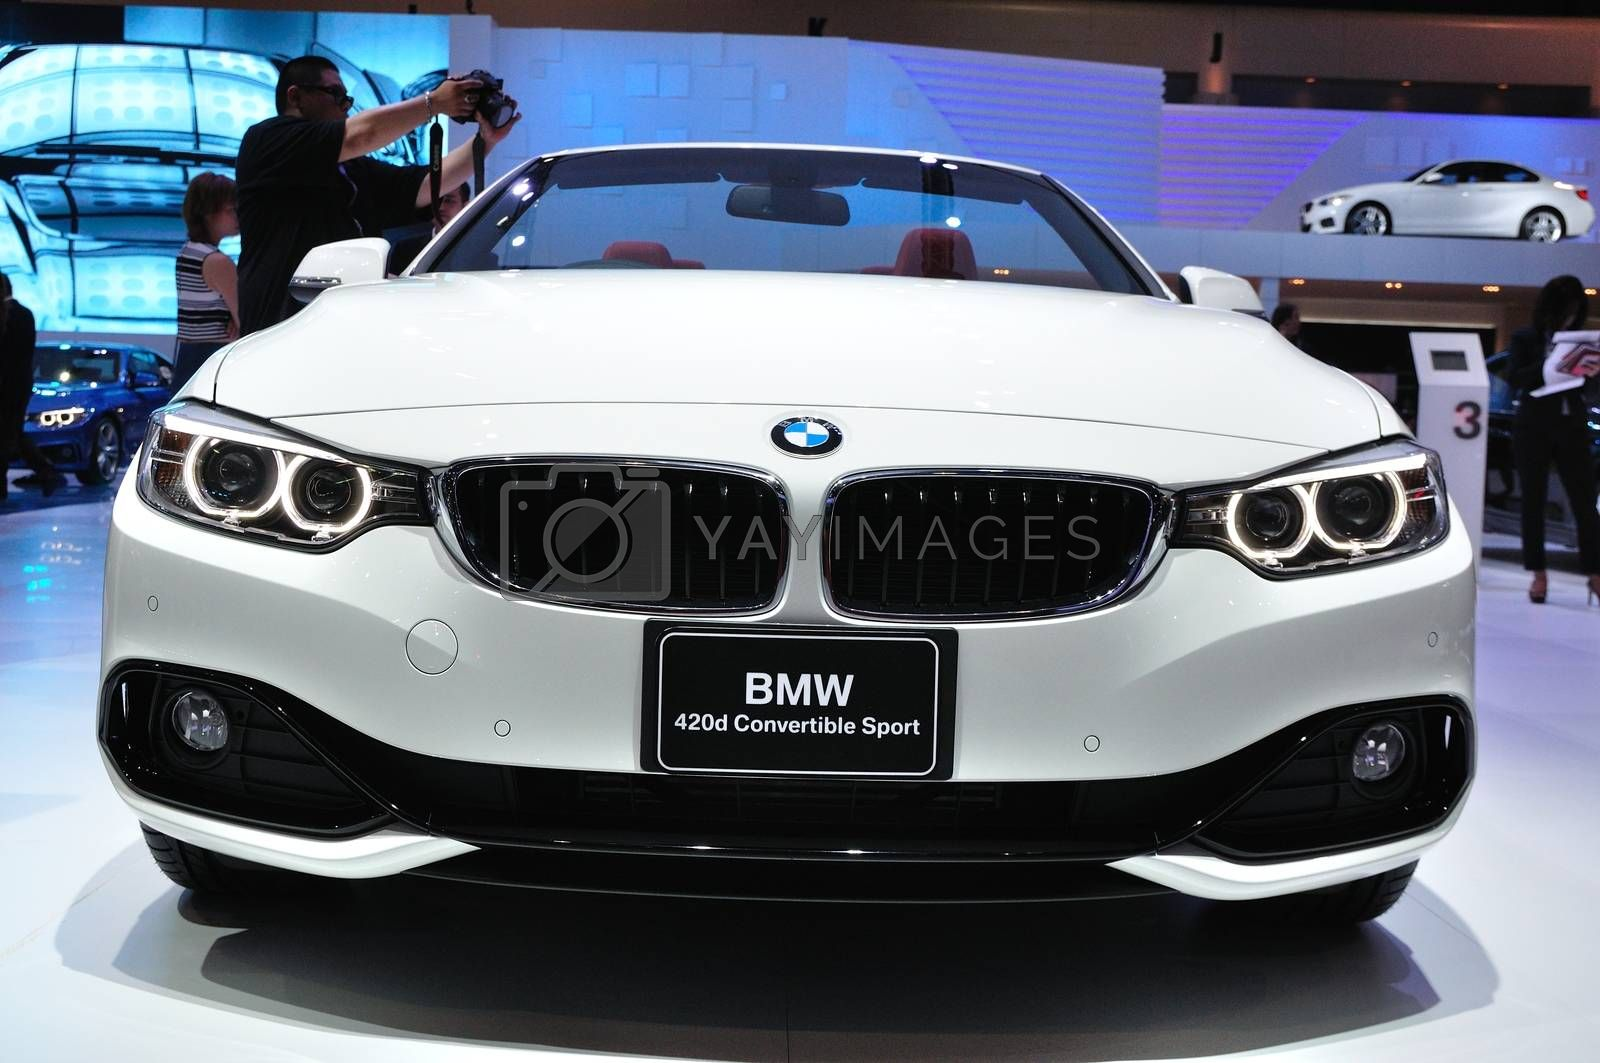 NONTHABURI - MARCH 25:NEW BM 420d convertible sport on display a by thampapon